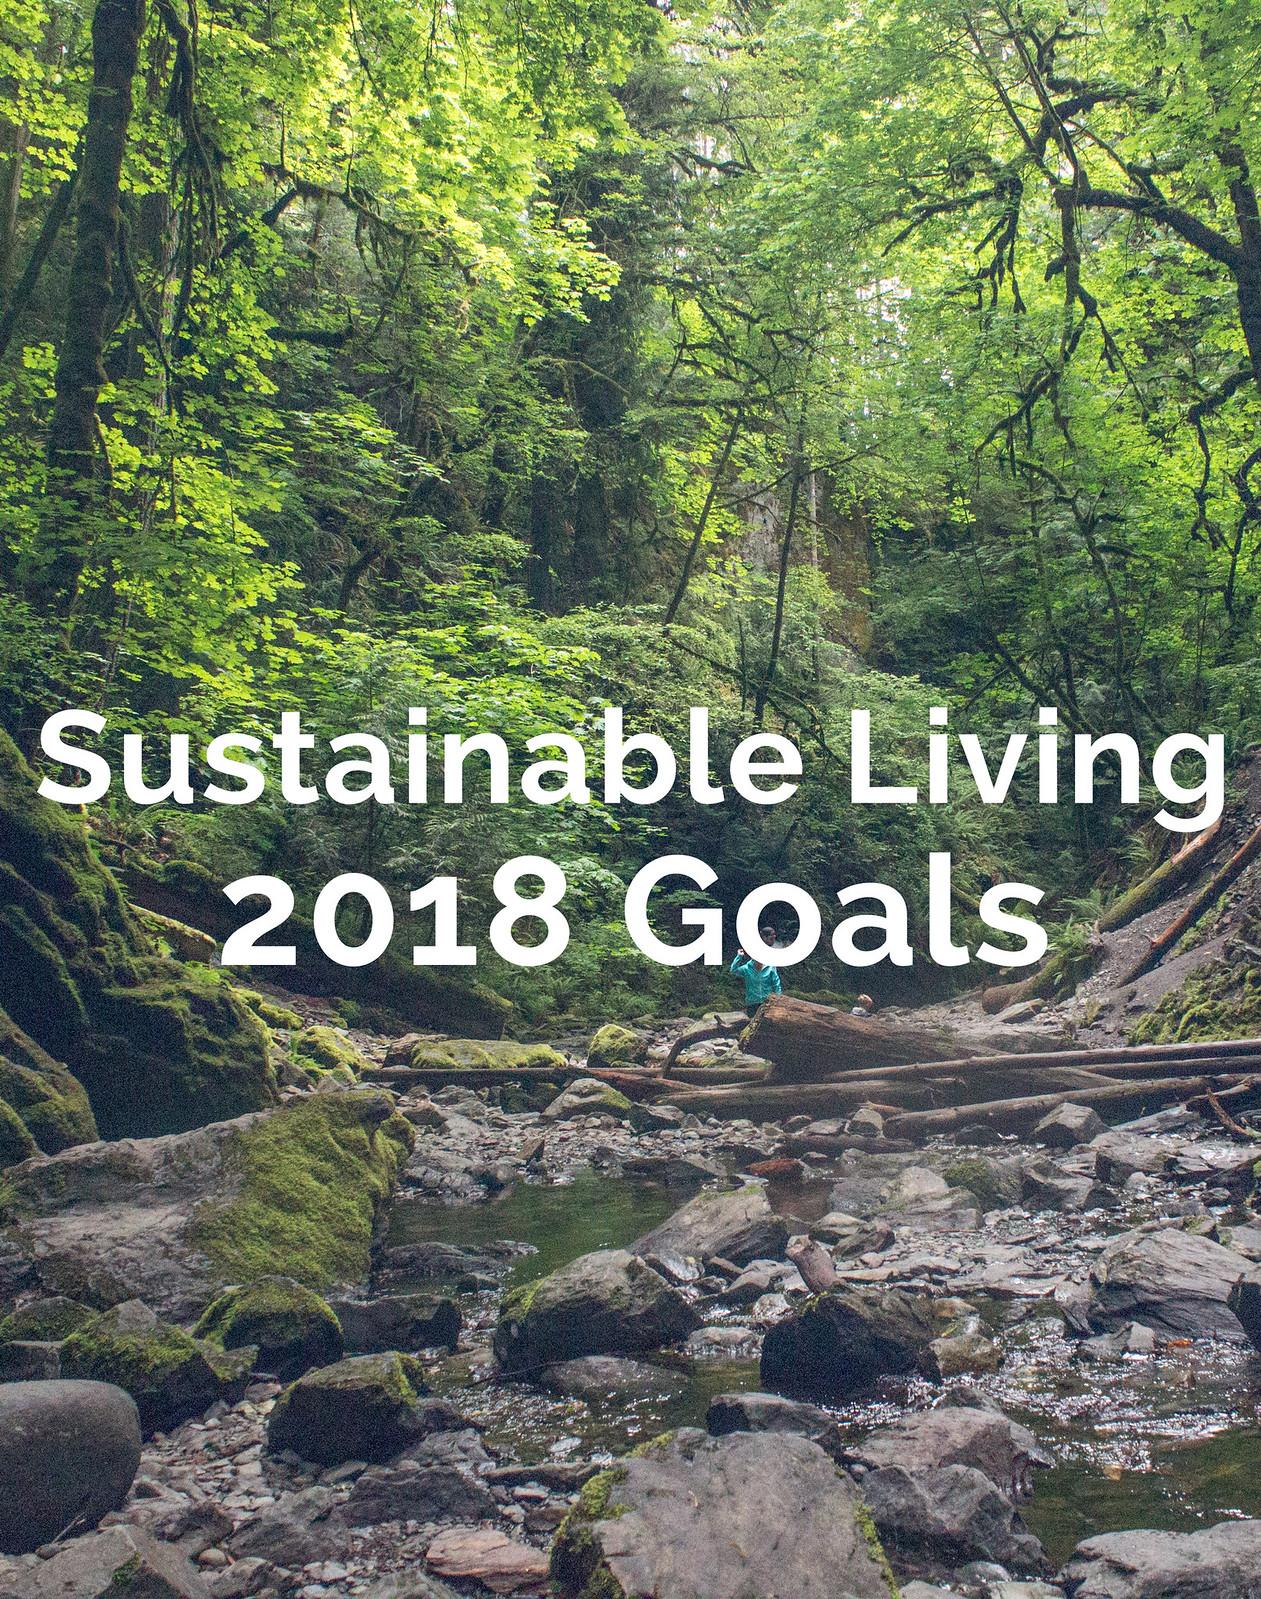 Sustainable living 2018 goals